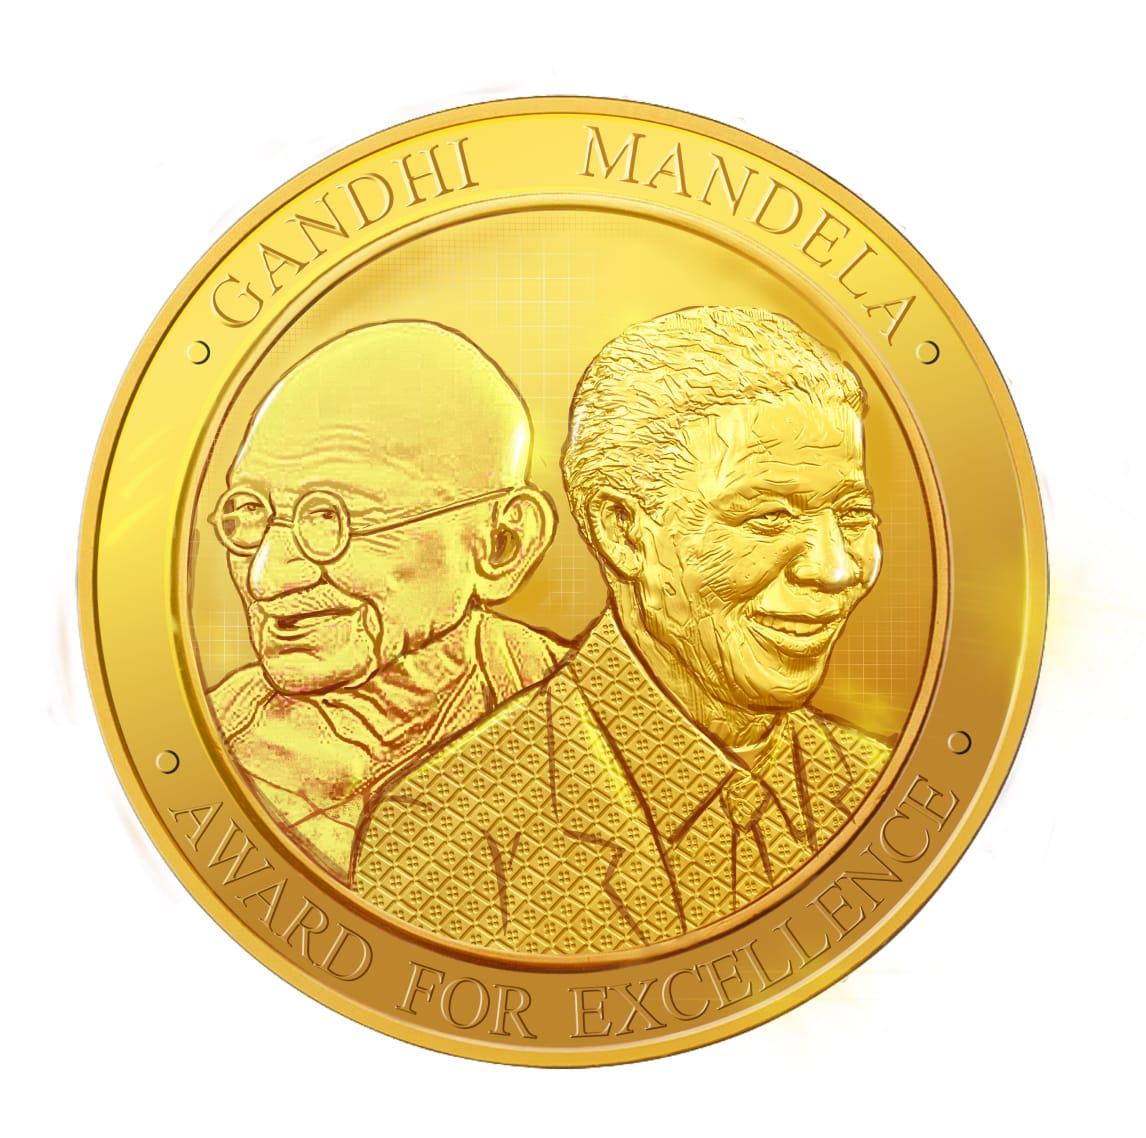 Gandhi Mandela Award for excellence